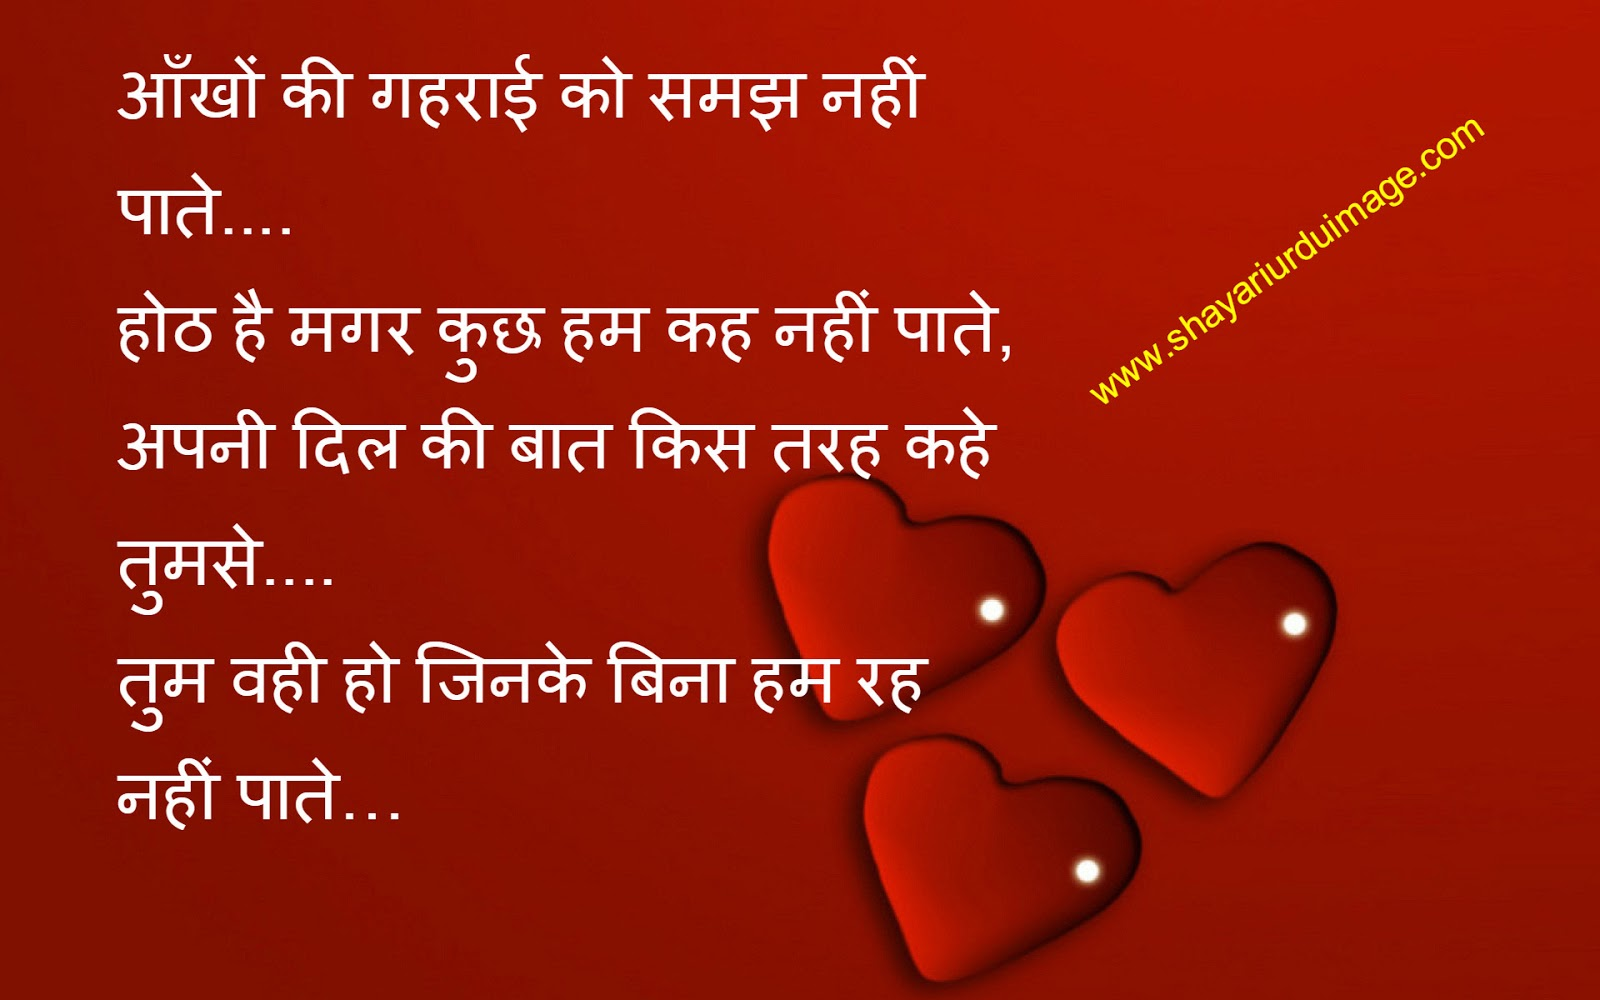 Good Morning Love You Shayari : I love you images for girlfriend in hd wallpaper